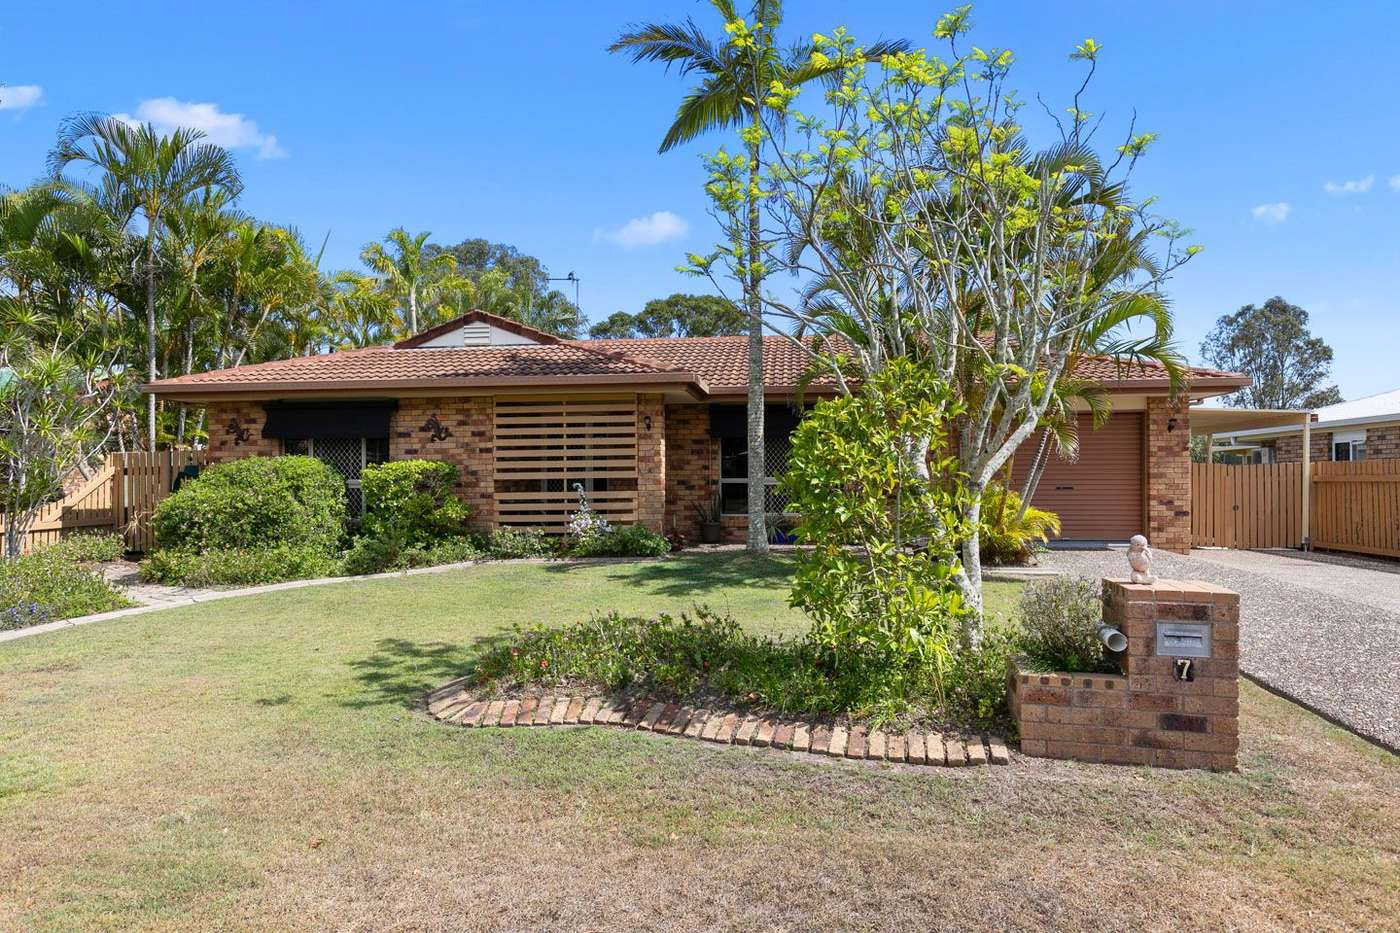 Main view of Homely house listing, 7 Bauhinia Drive, Kawungan, QLD 4655